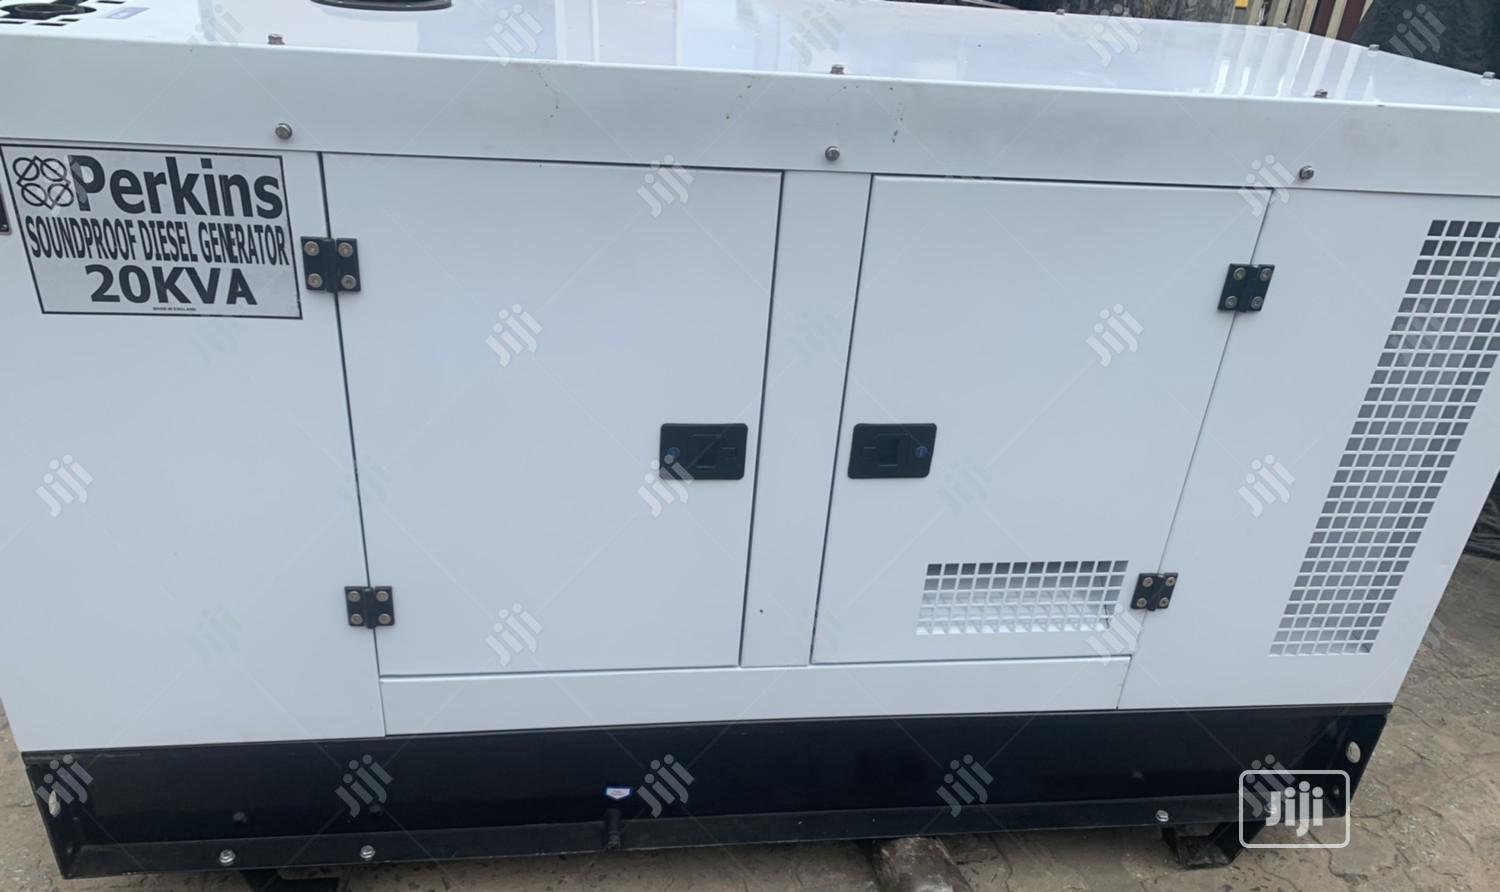 20kva Perkins SOUNDPROOF Generator | Electrical Equipment for sale in Alimosho, Lagos State, Nigeria